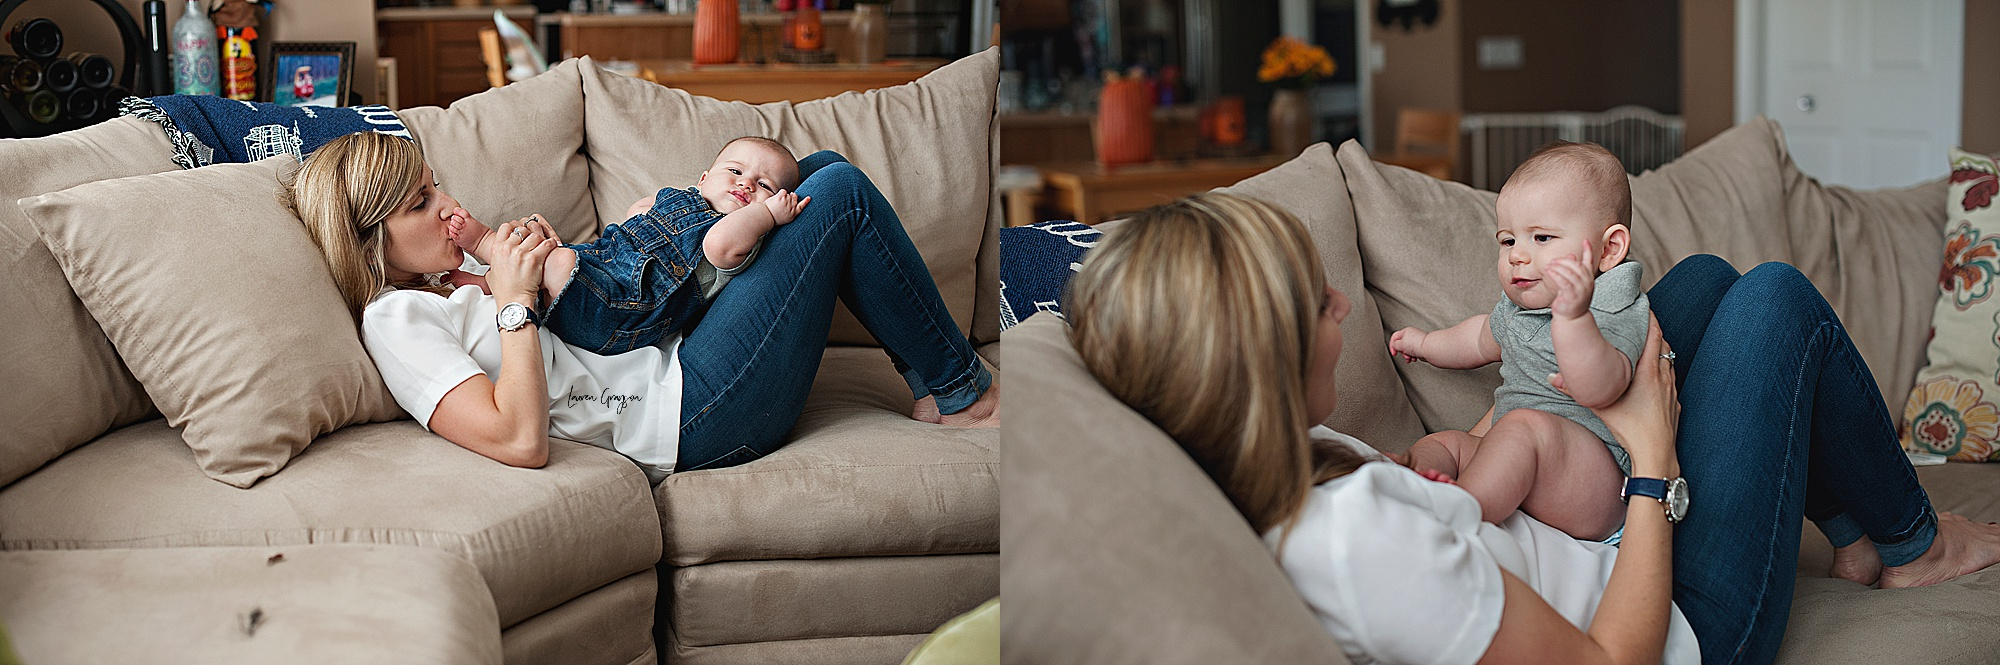 lauren-grayson-photography-cleveland-ohio-family-session-lifestyle-in-home_0010.jpg